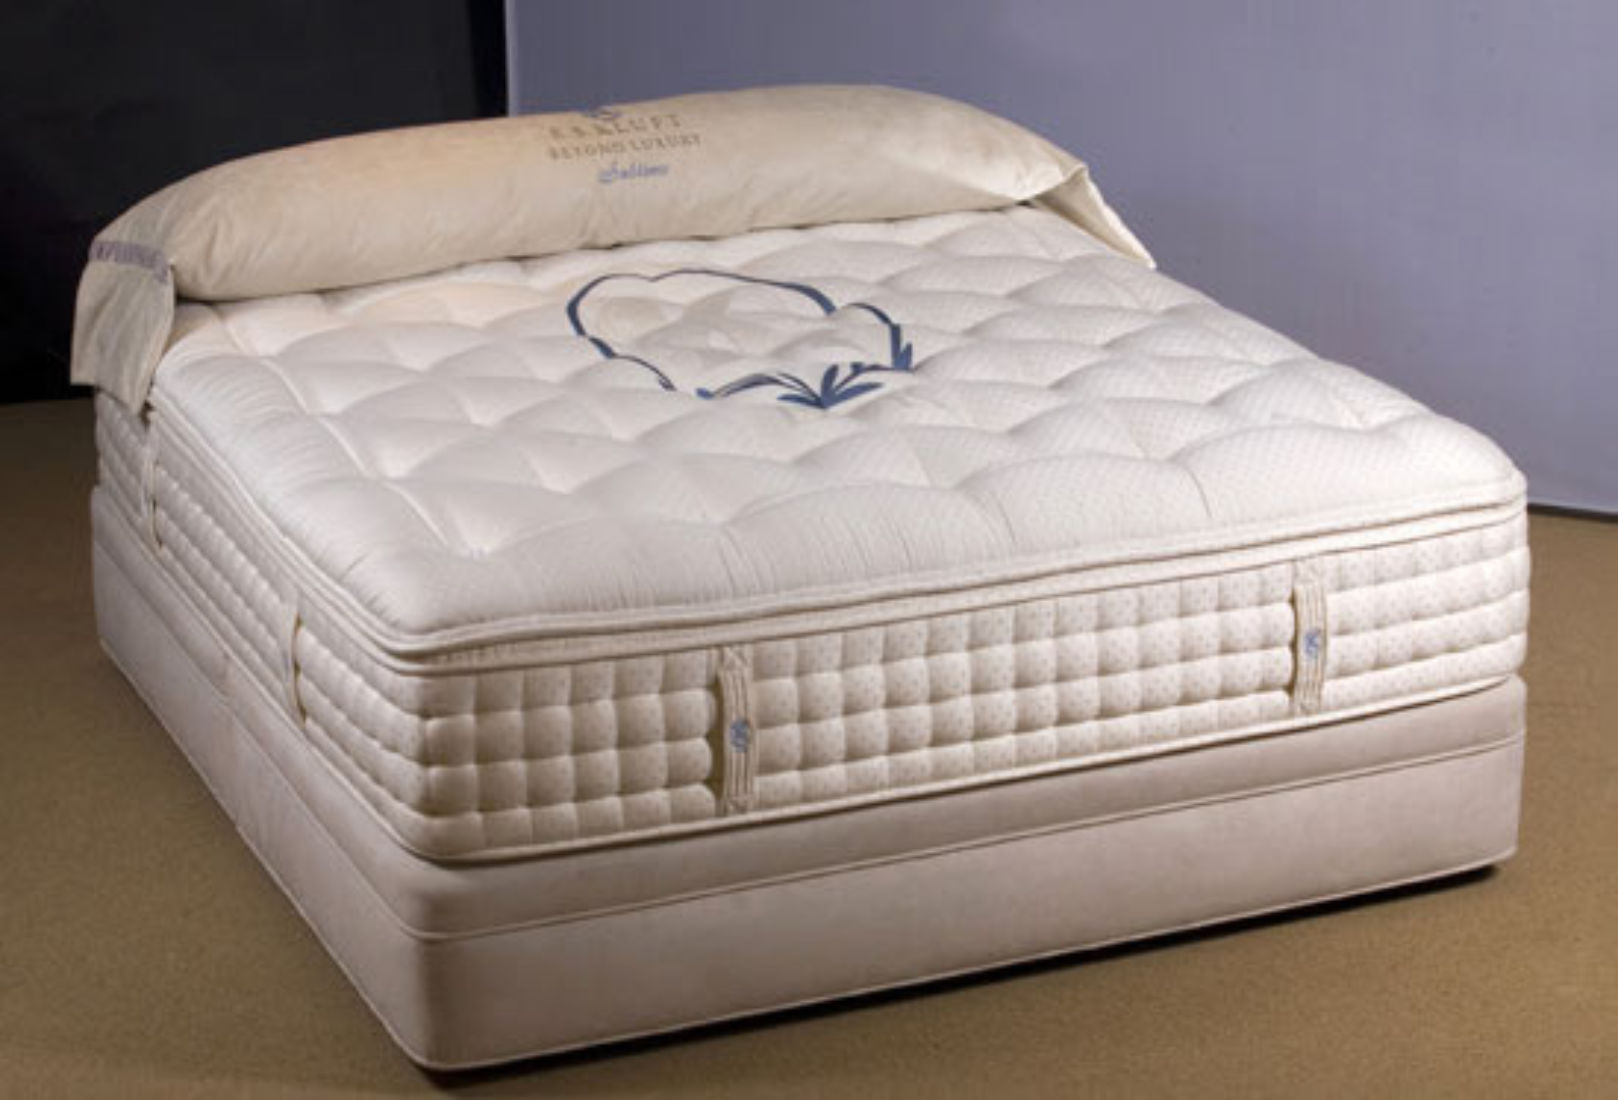 The World's Most Expensive Mattress